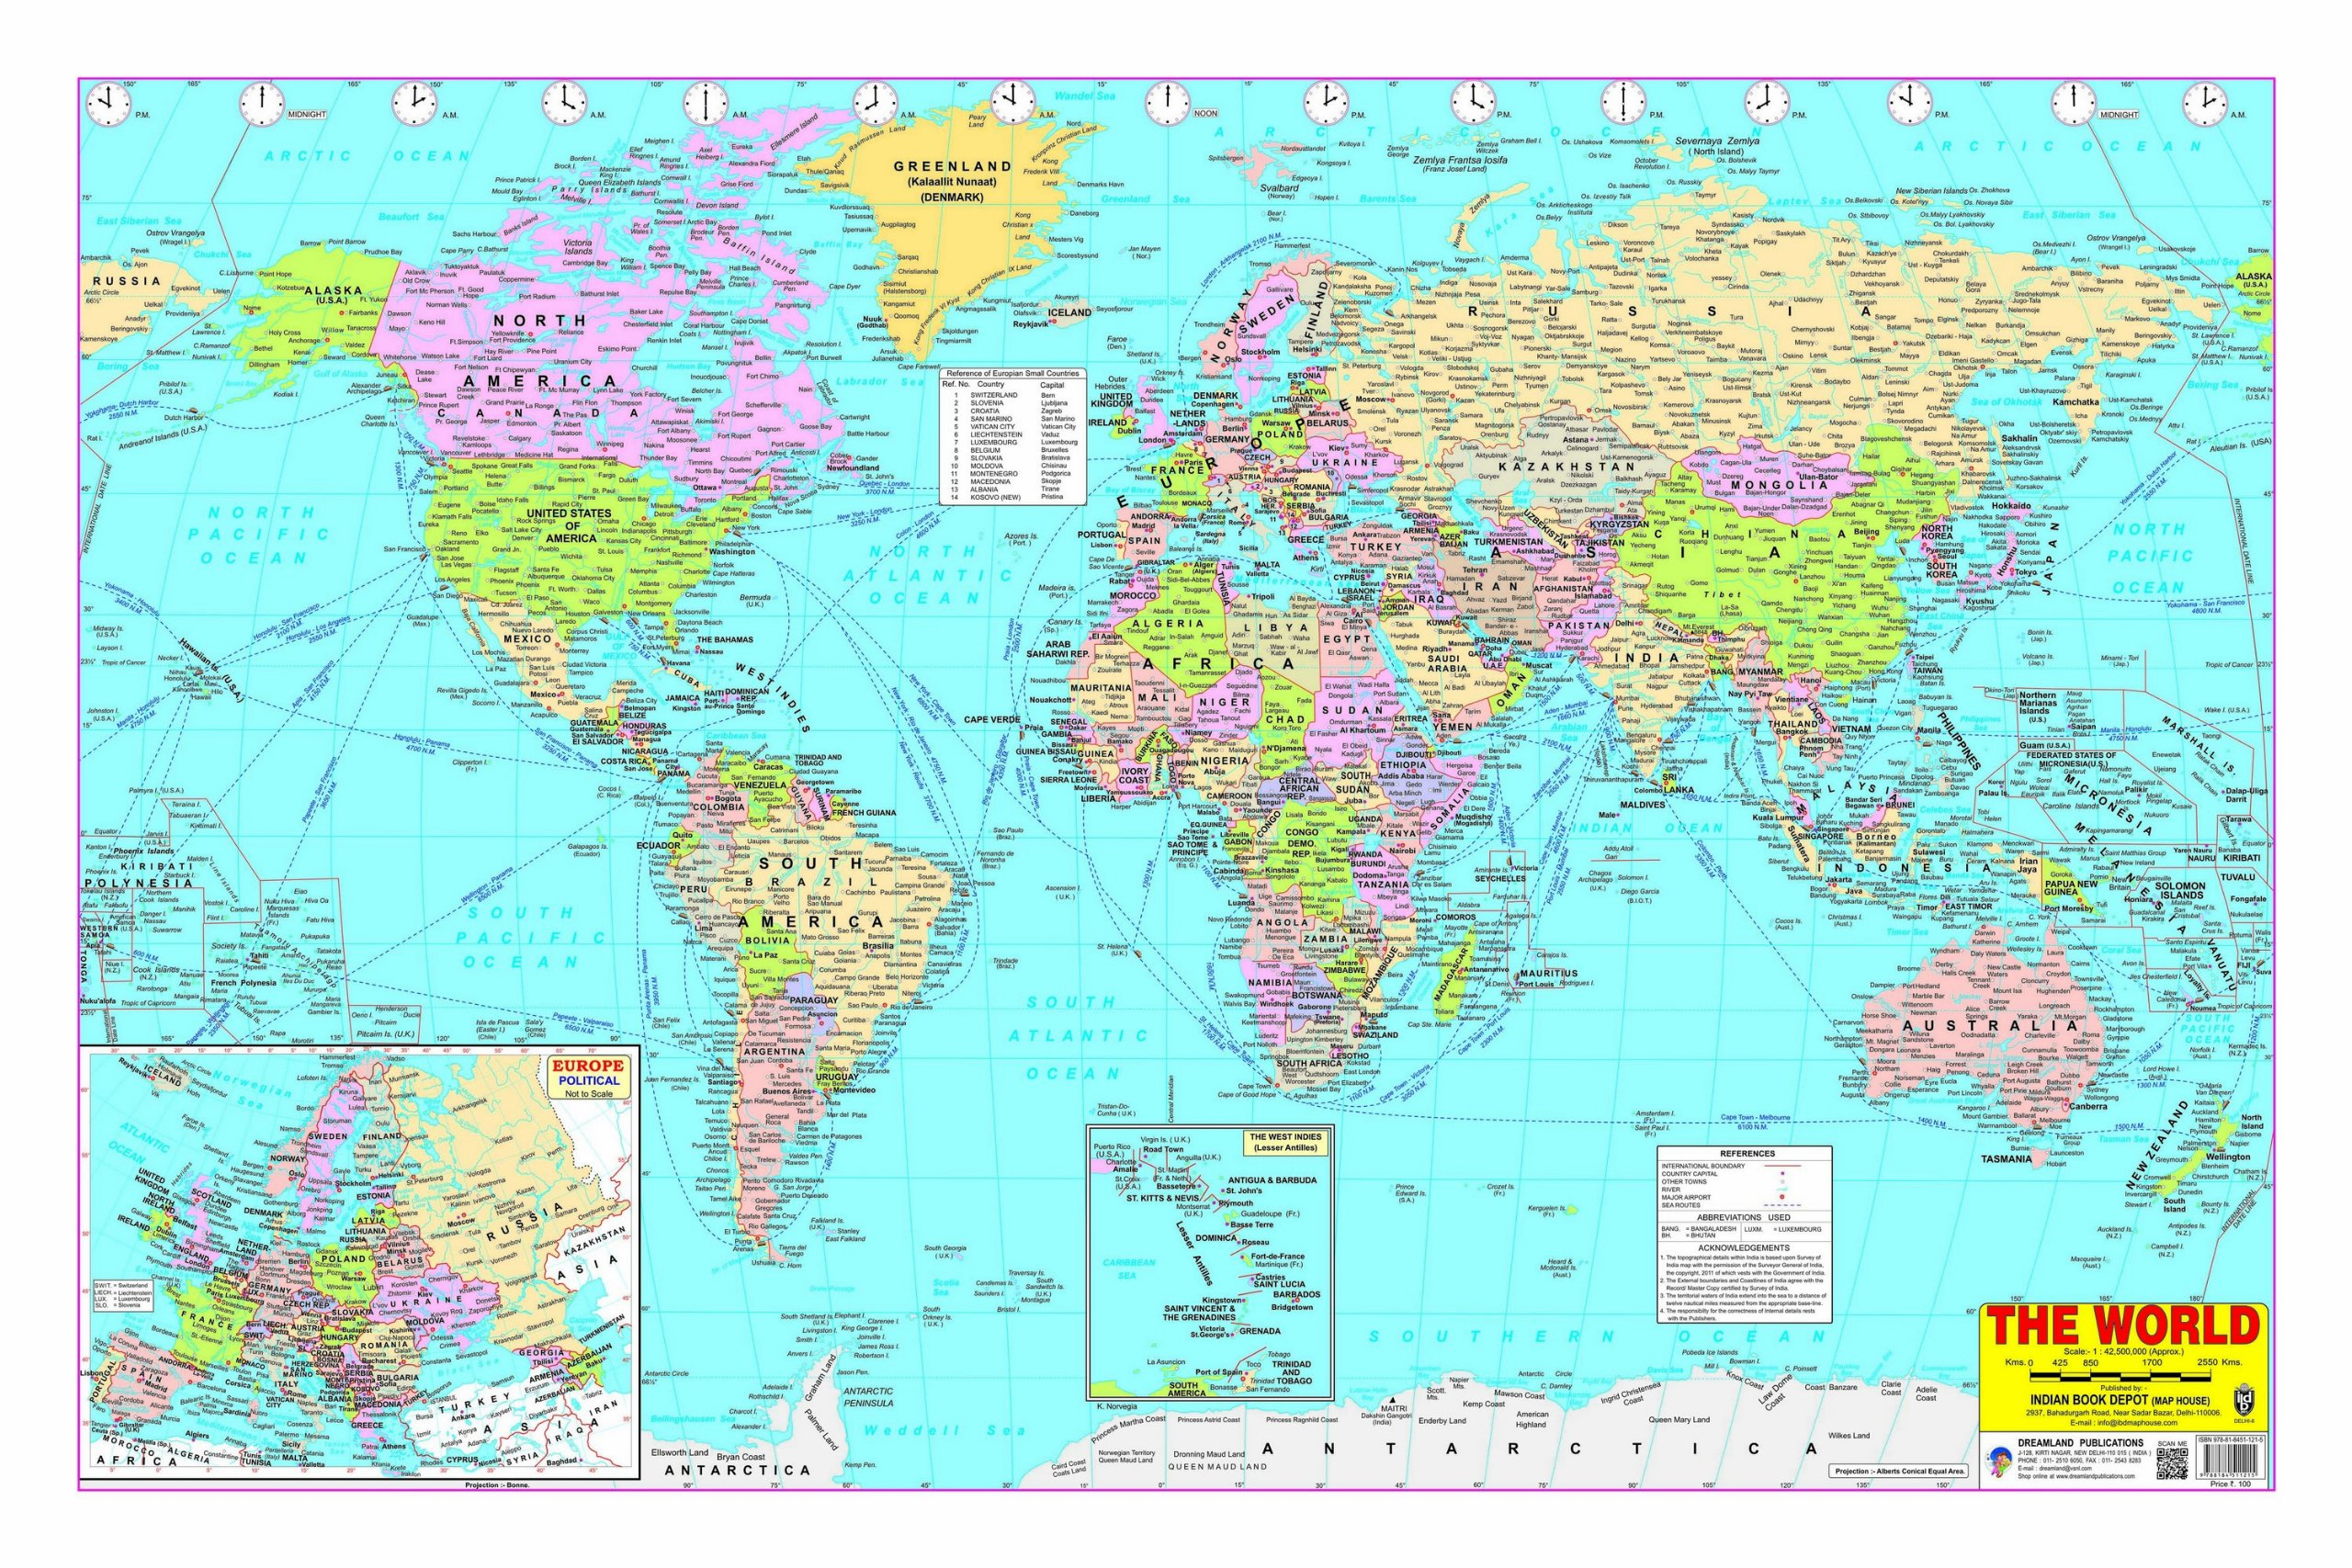 Buy World Map Book Online At Low Prices In India World Map - World maps online